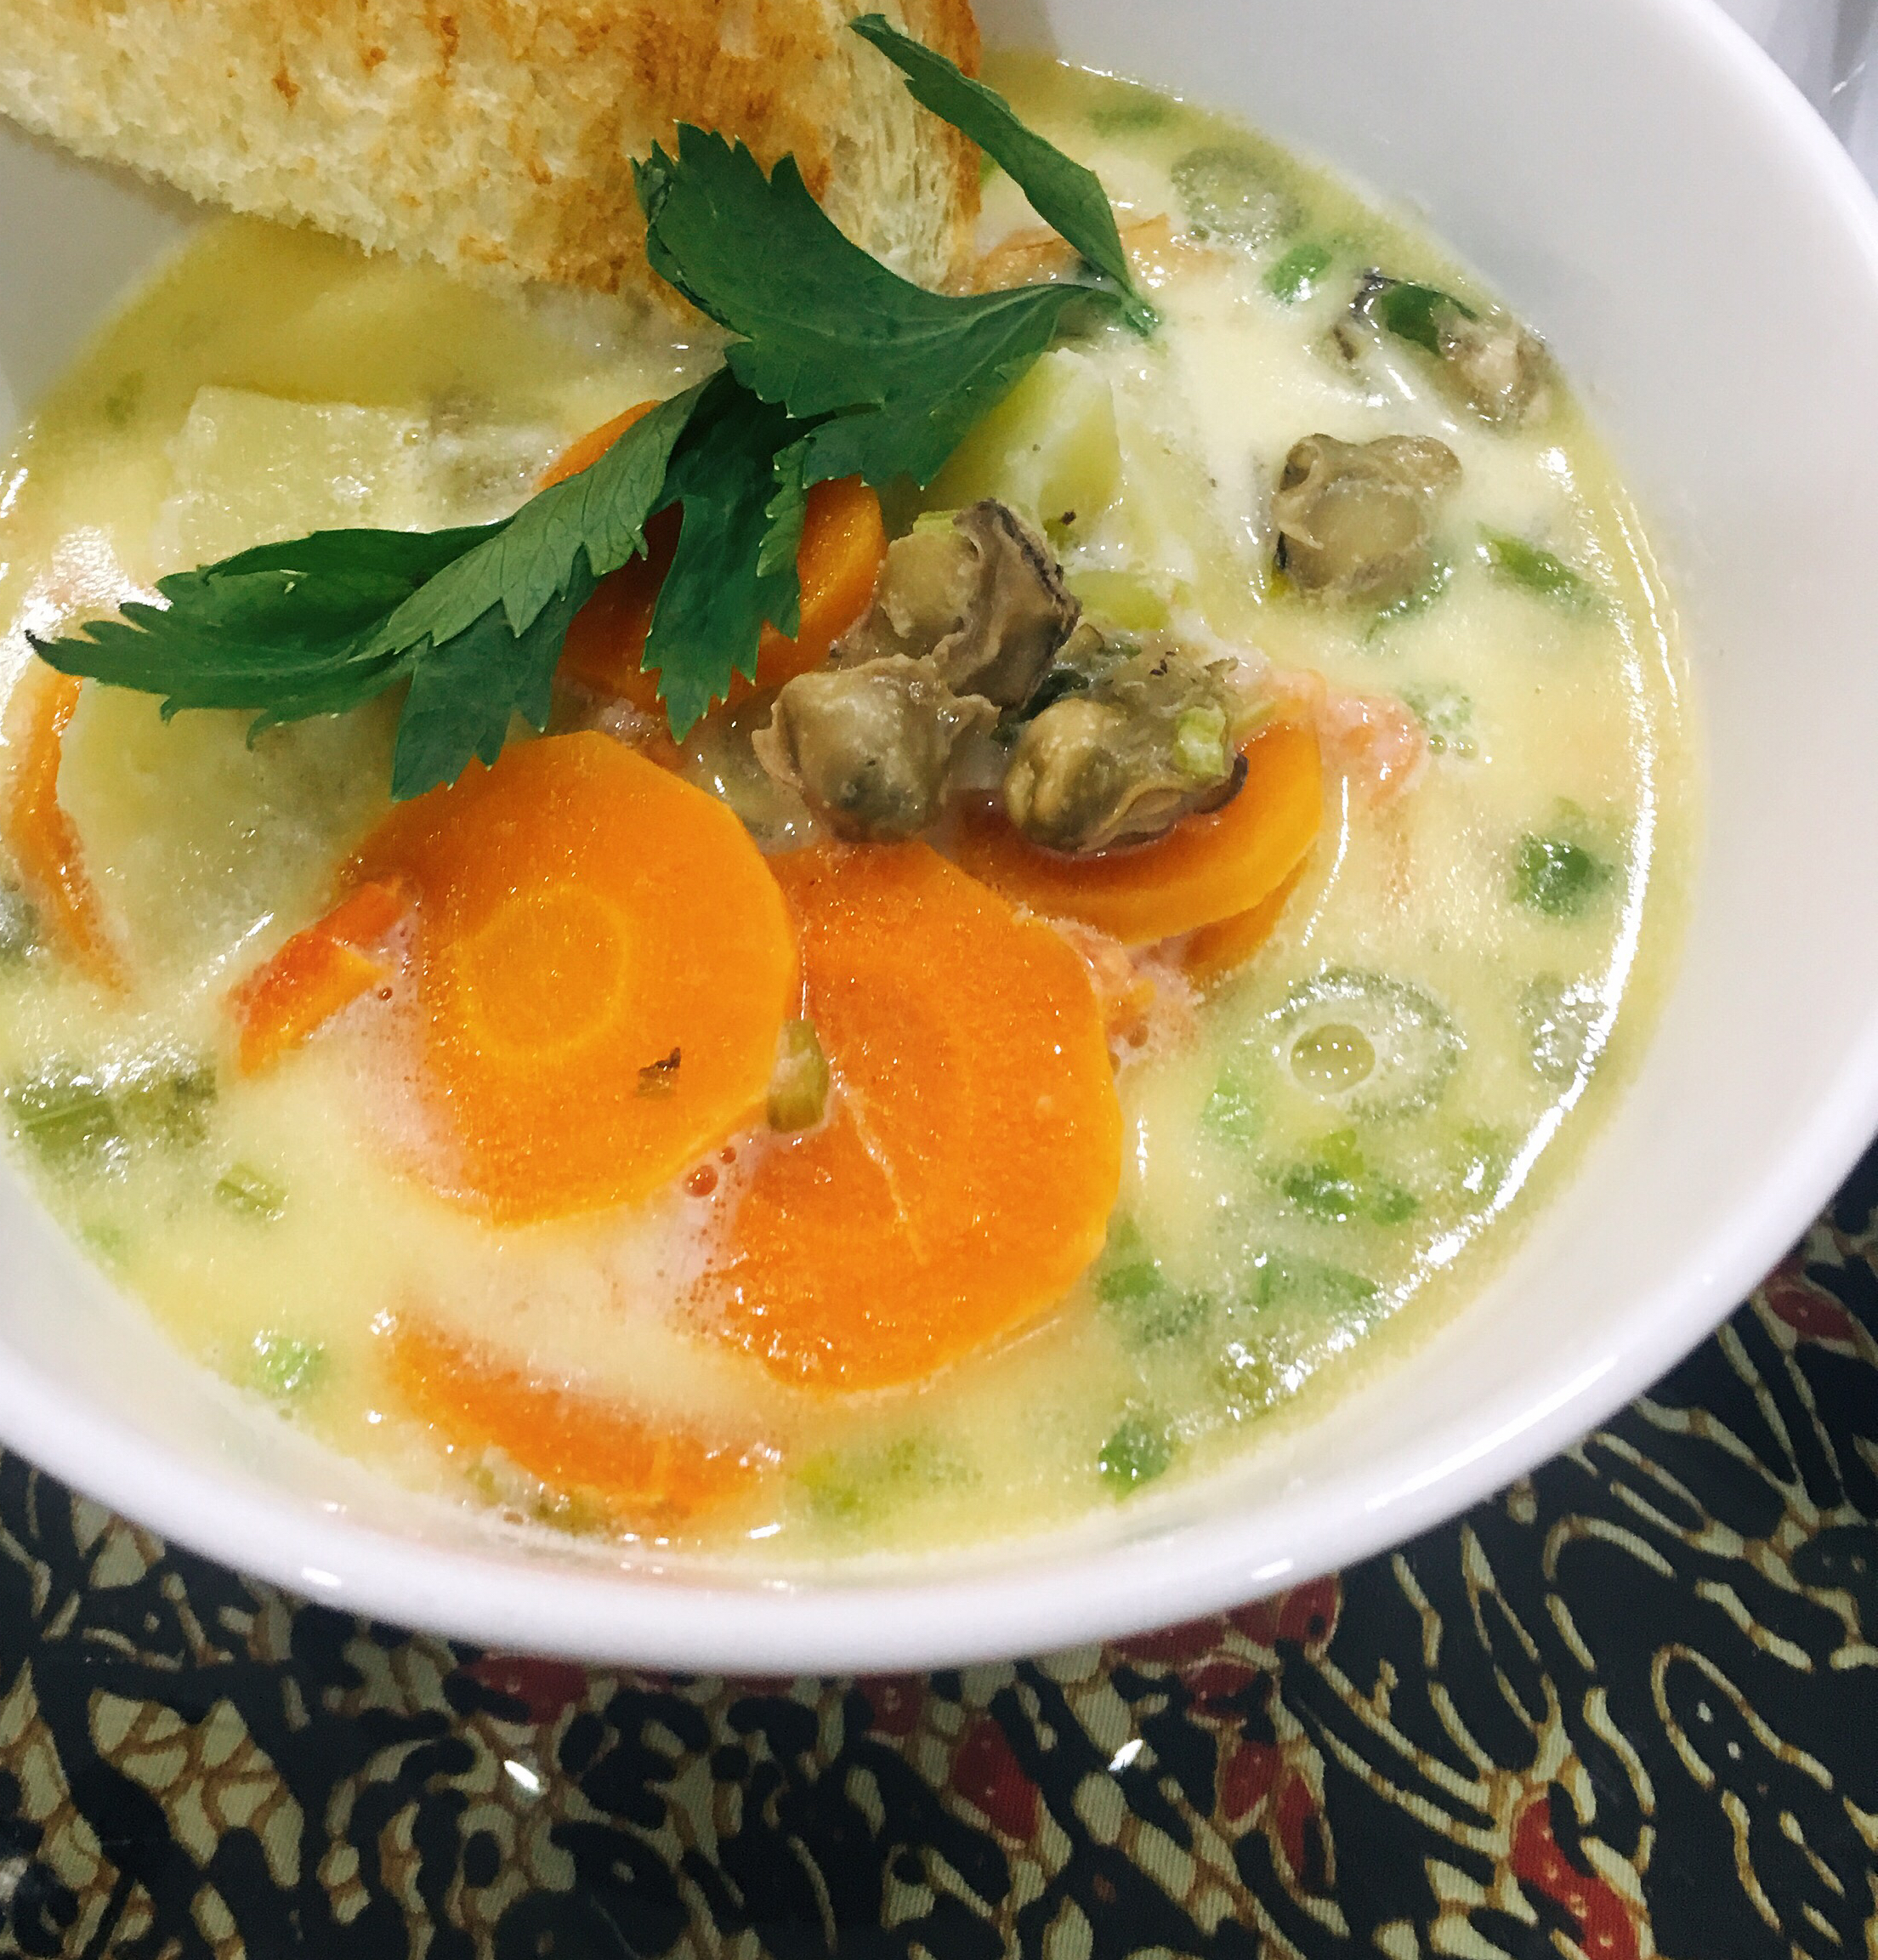 Oyster Stew with Evaporated Milk